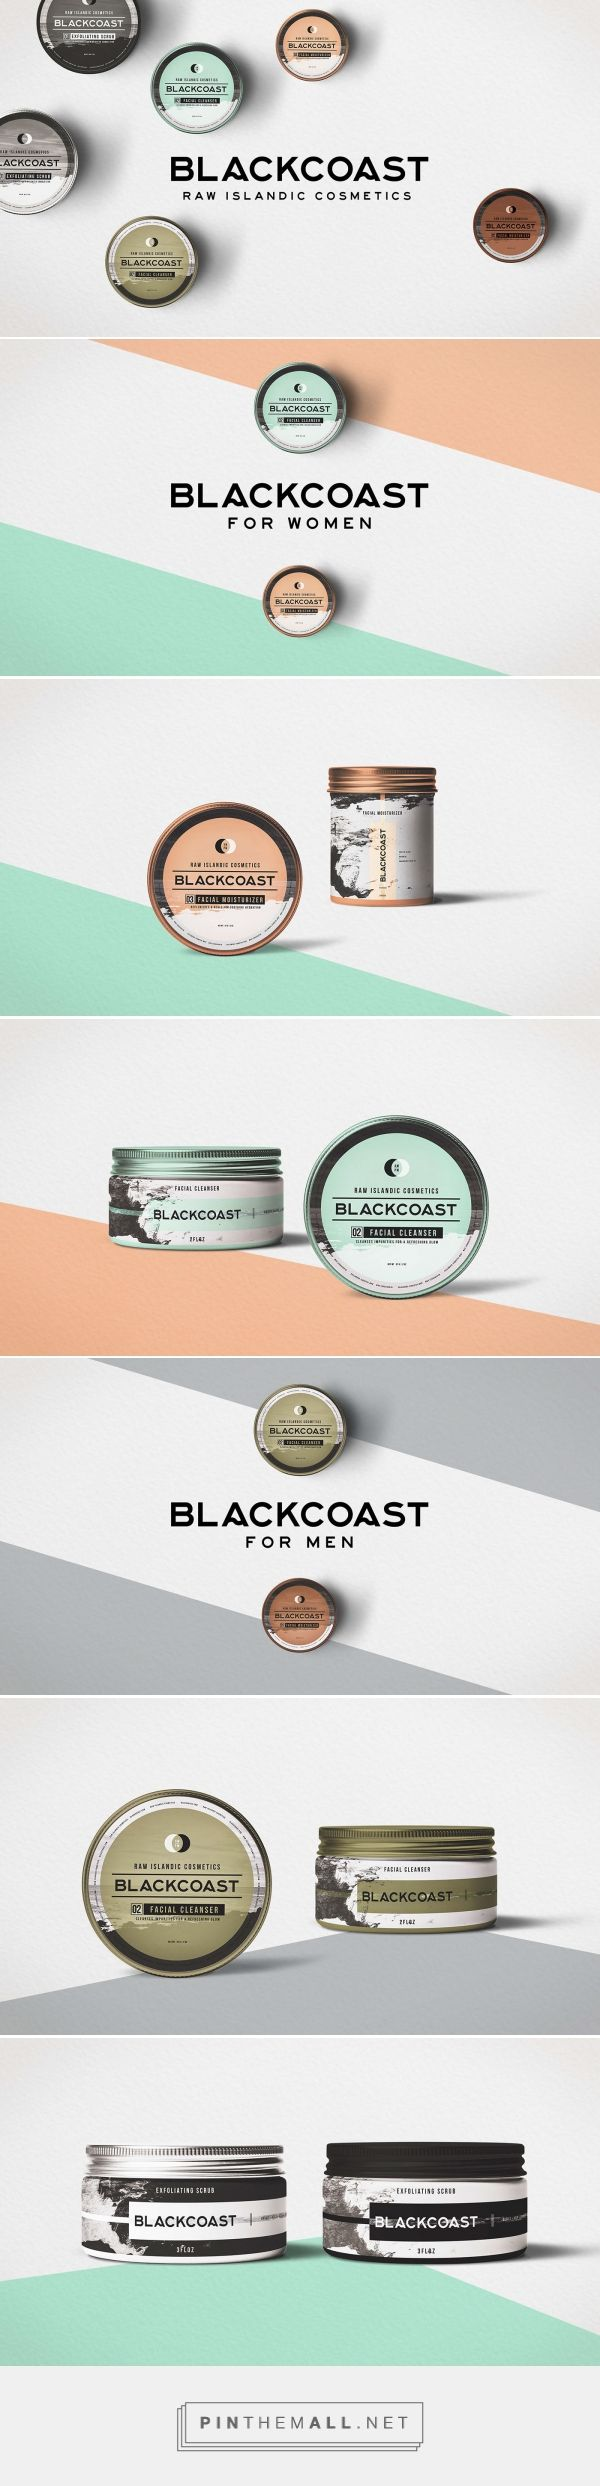 Branding and packaging design for BLACKCOAST // Spring 2016 on Behance by Wyatt Lampley Nashville, TN curated by Packaging Diva PD. A completely organic facial exfoliant that reflected the tough yet nourishing landscape their beloved Iceland.